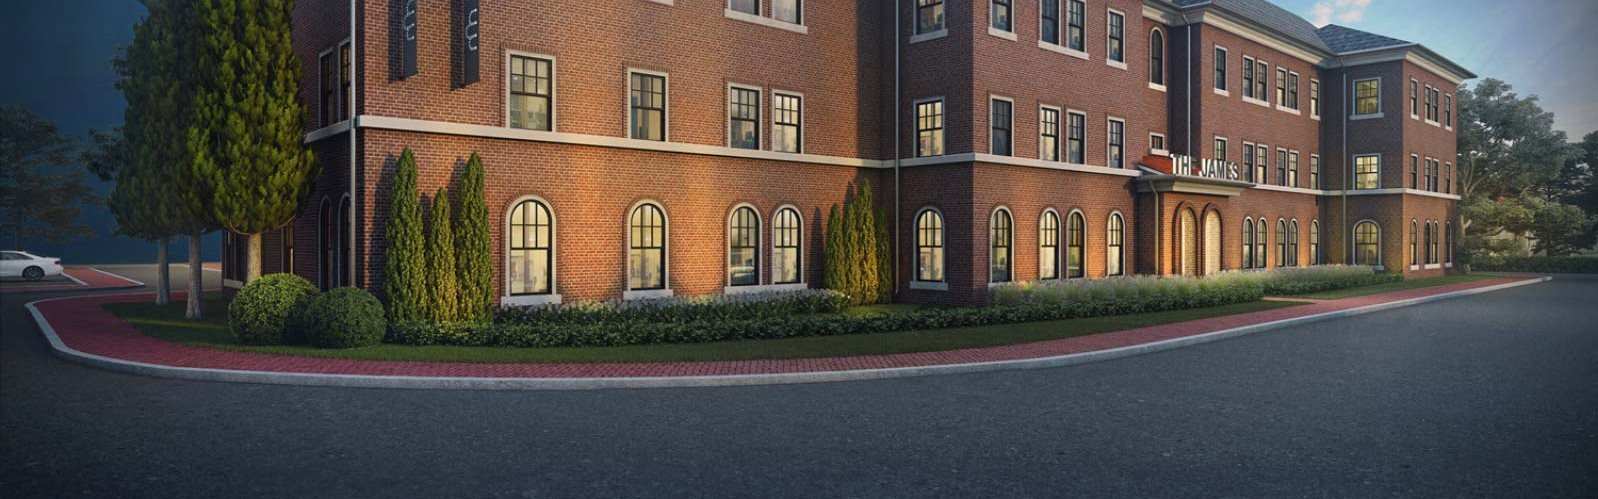 Senior living apartments in an old historic brick building